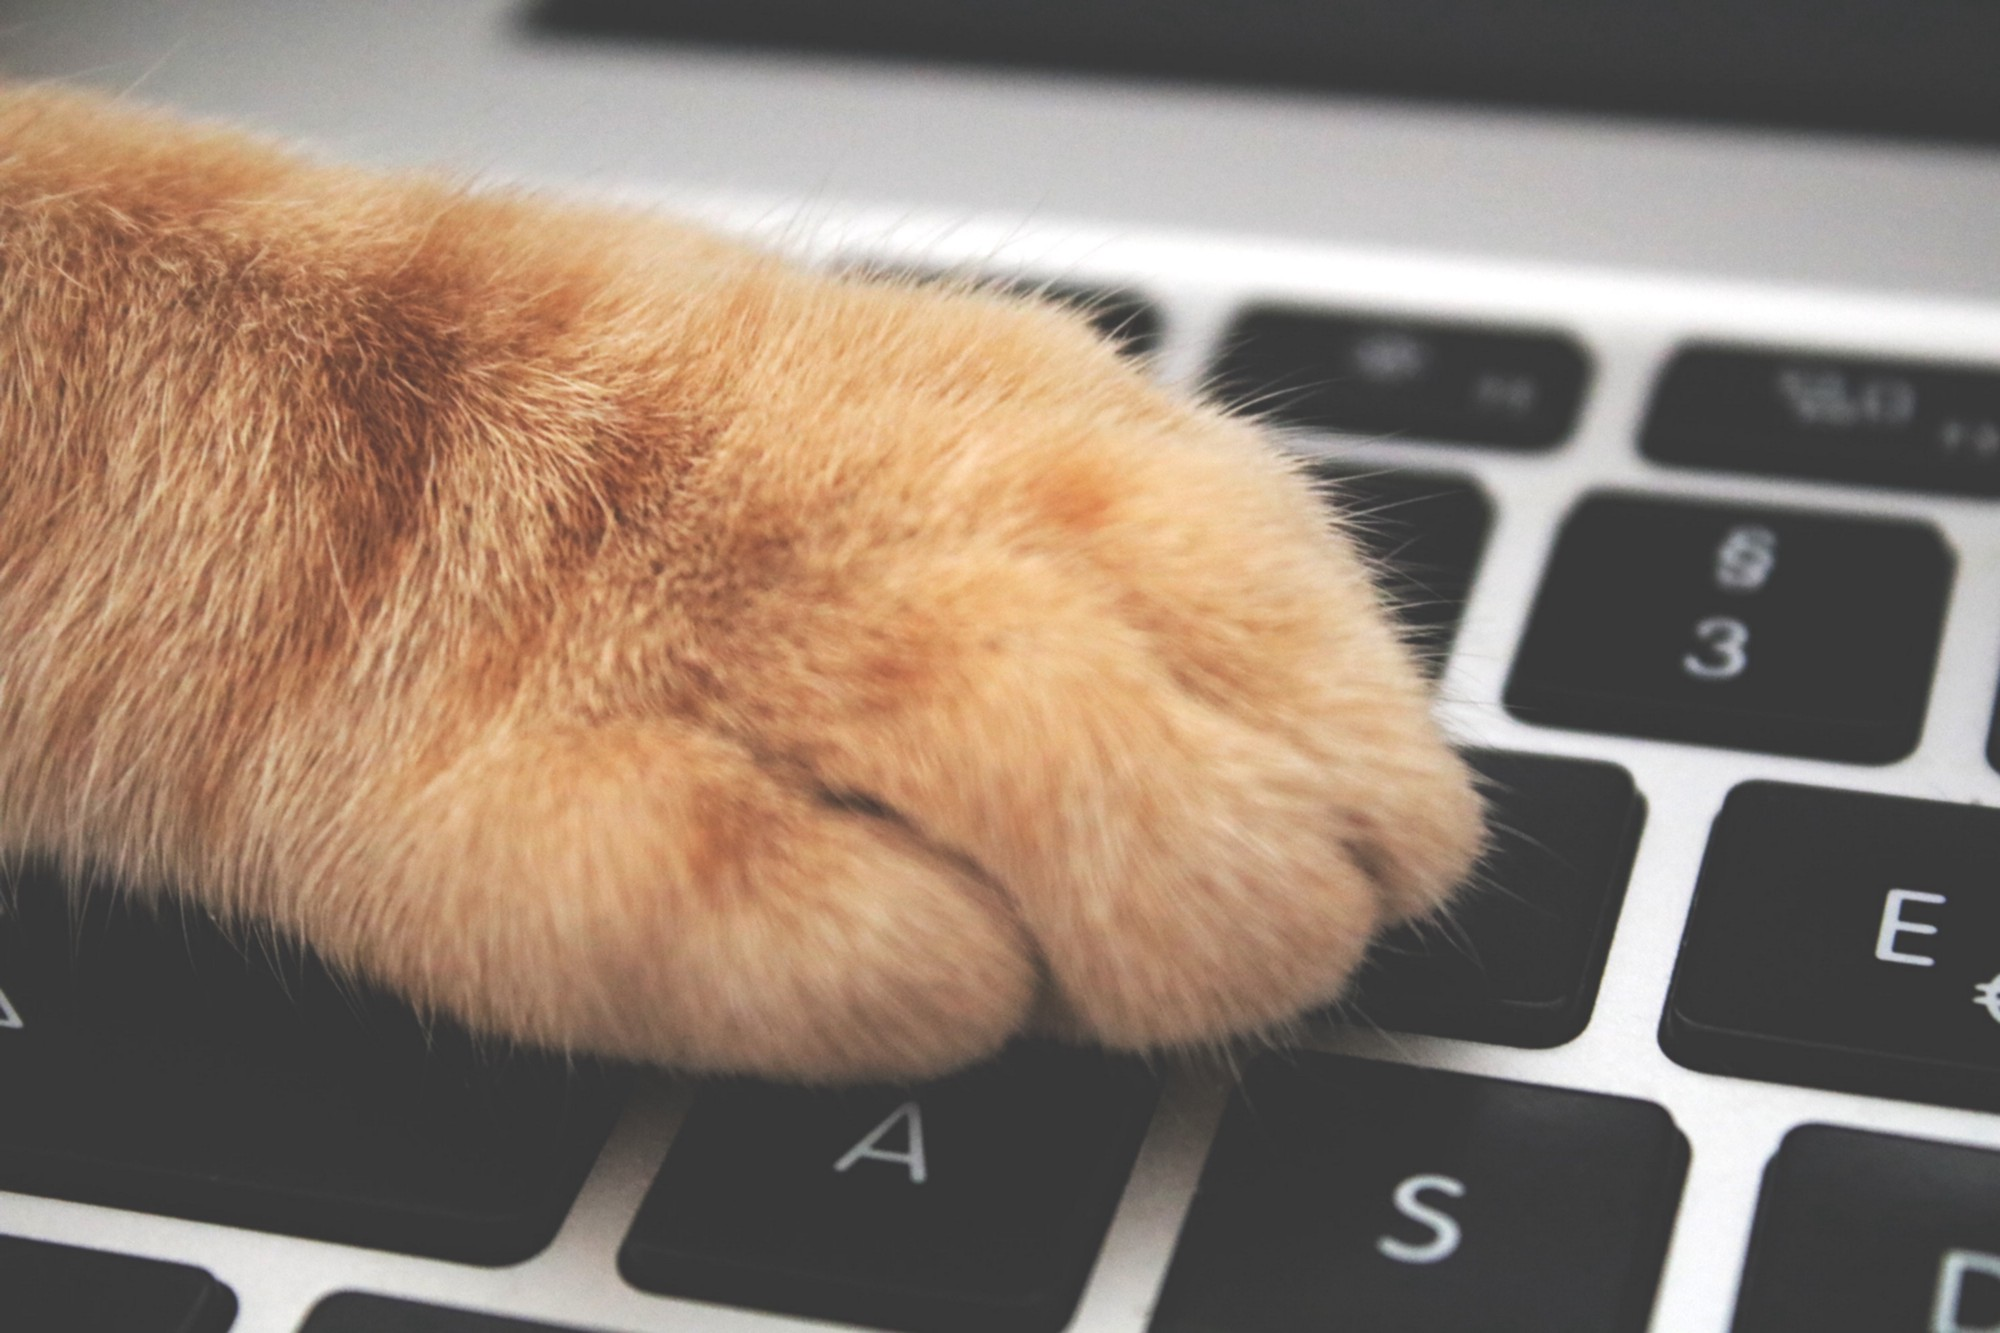 Cat typing on a keyboard.